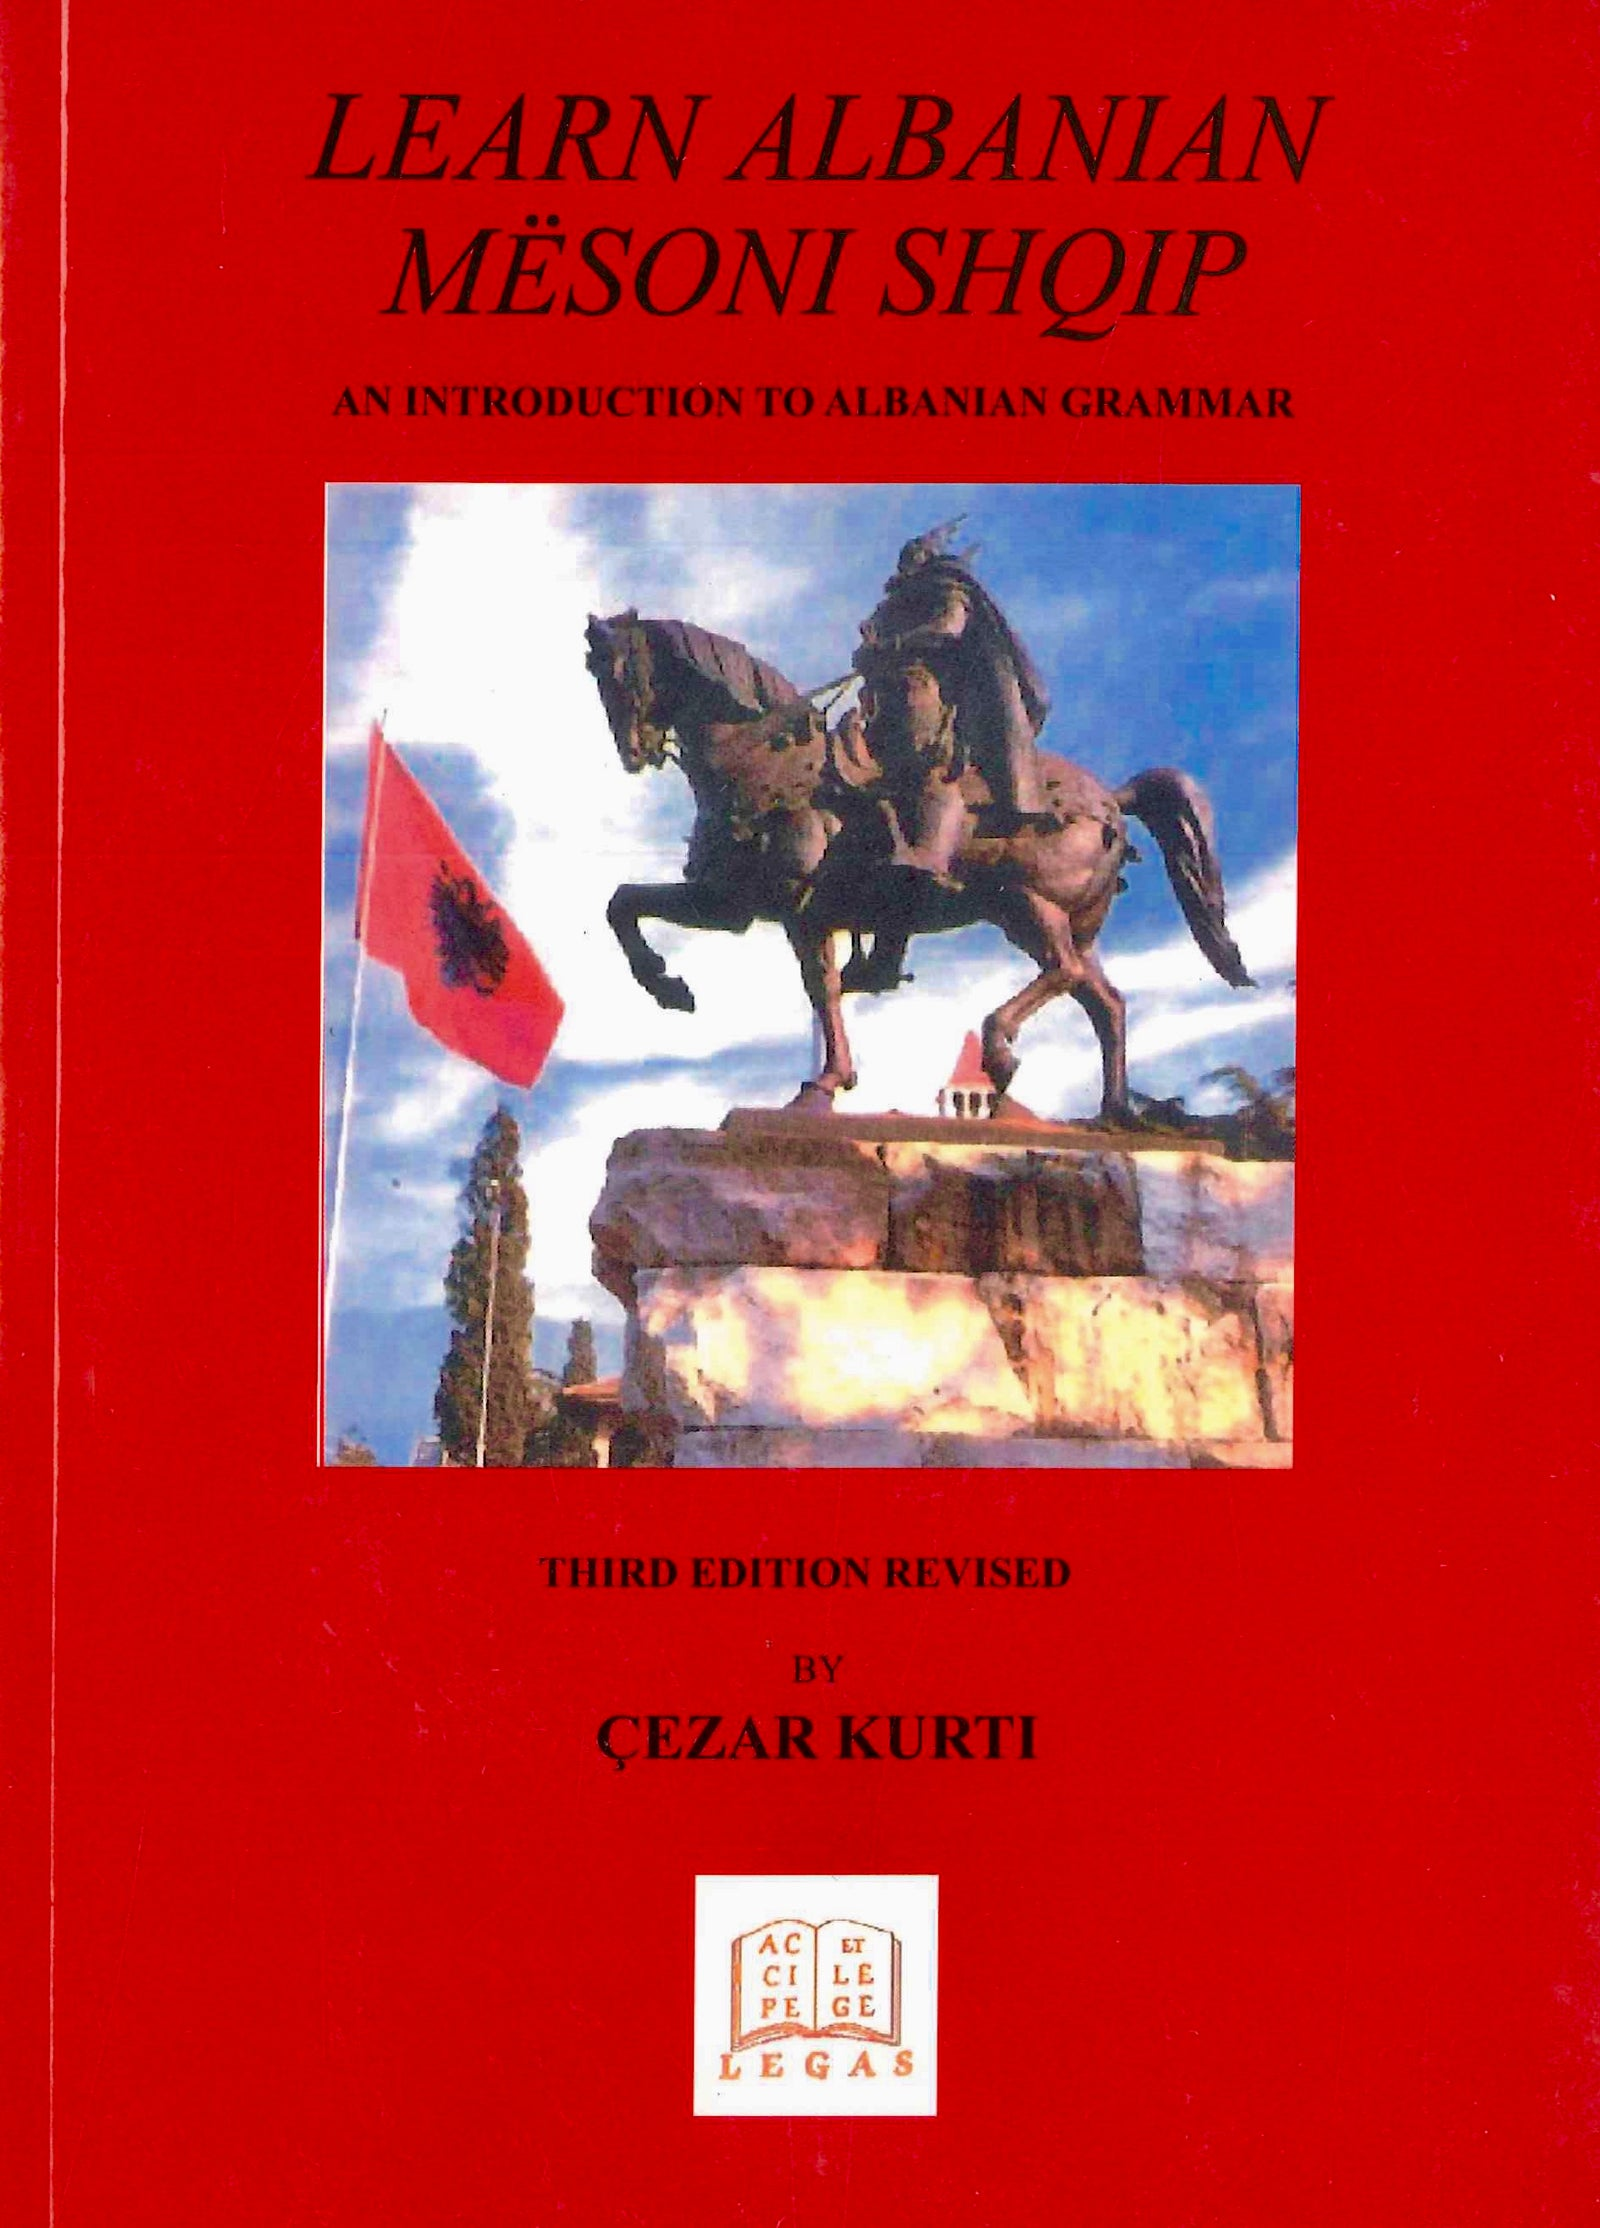 Learn Albanian - Introduction to Albanian Grammar - book & audio CD